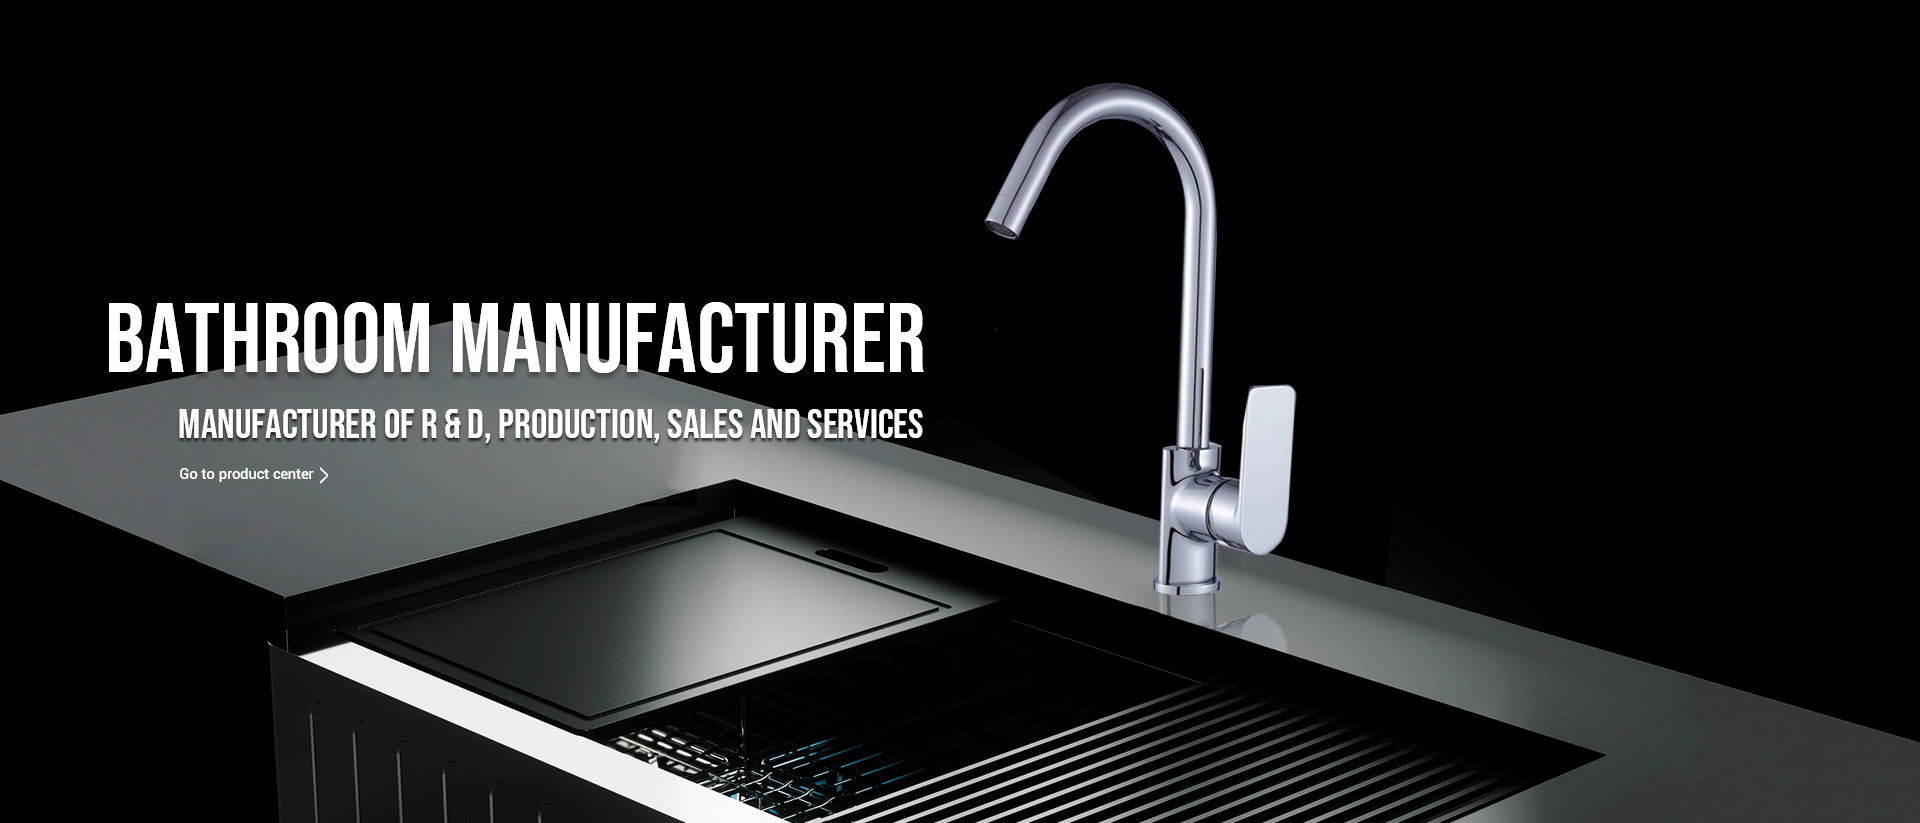 The faucet is a necessity for controlling the size of water flow